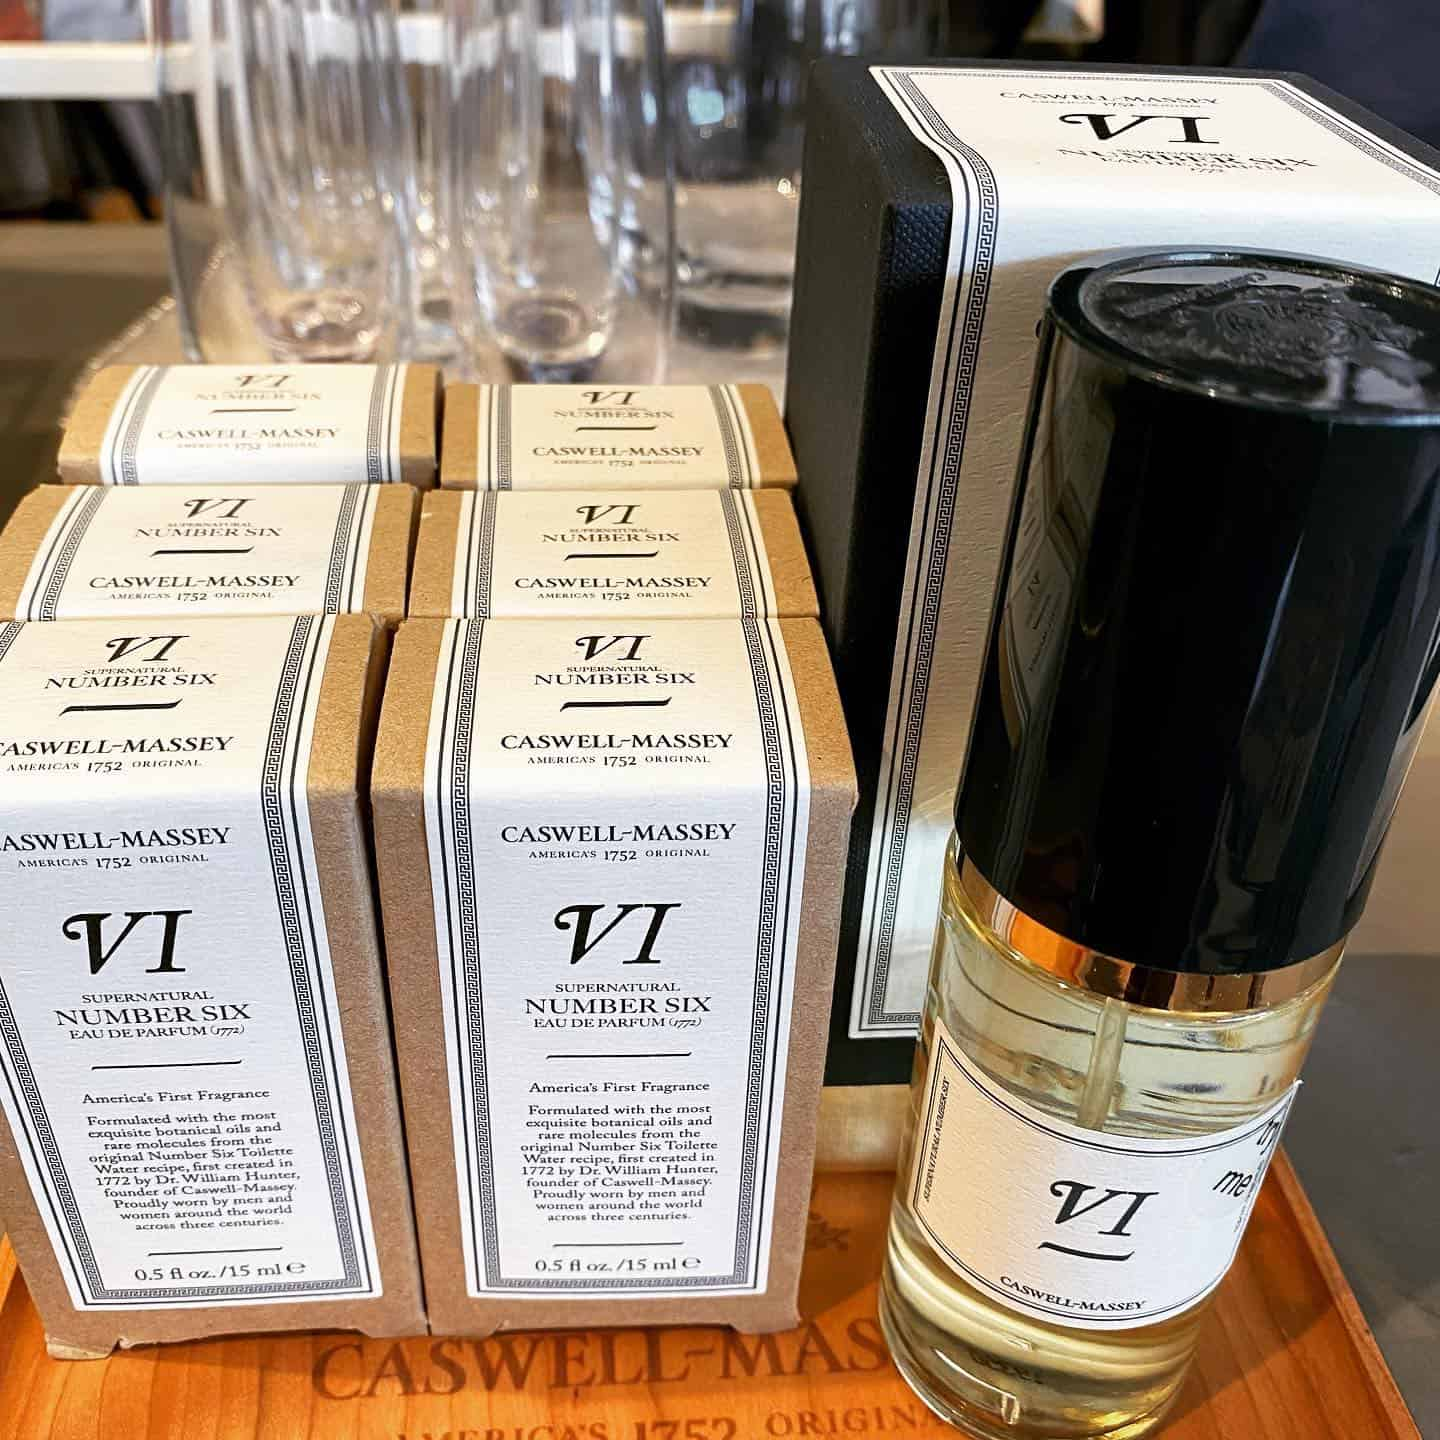 Caswell-Massey Number Six Fragrance